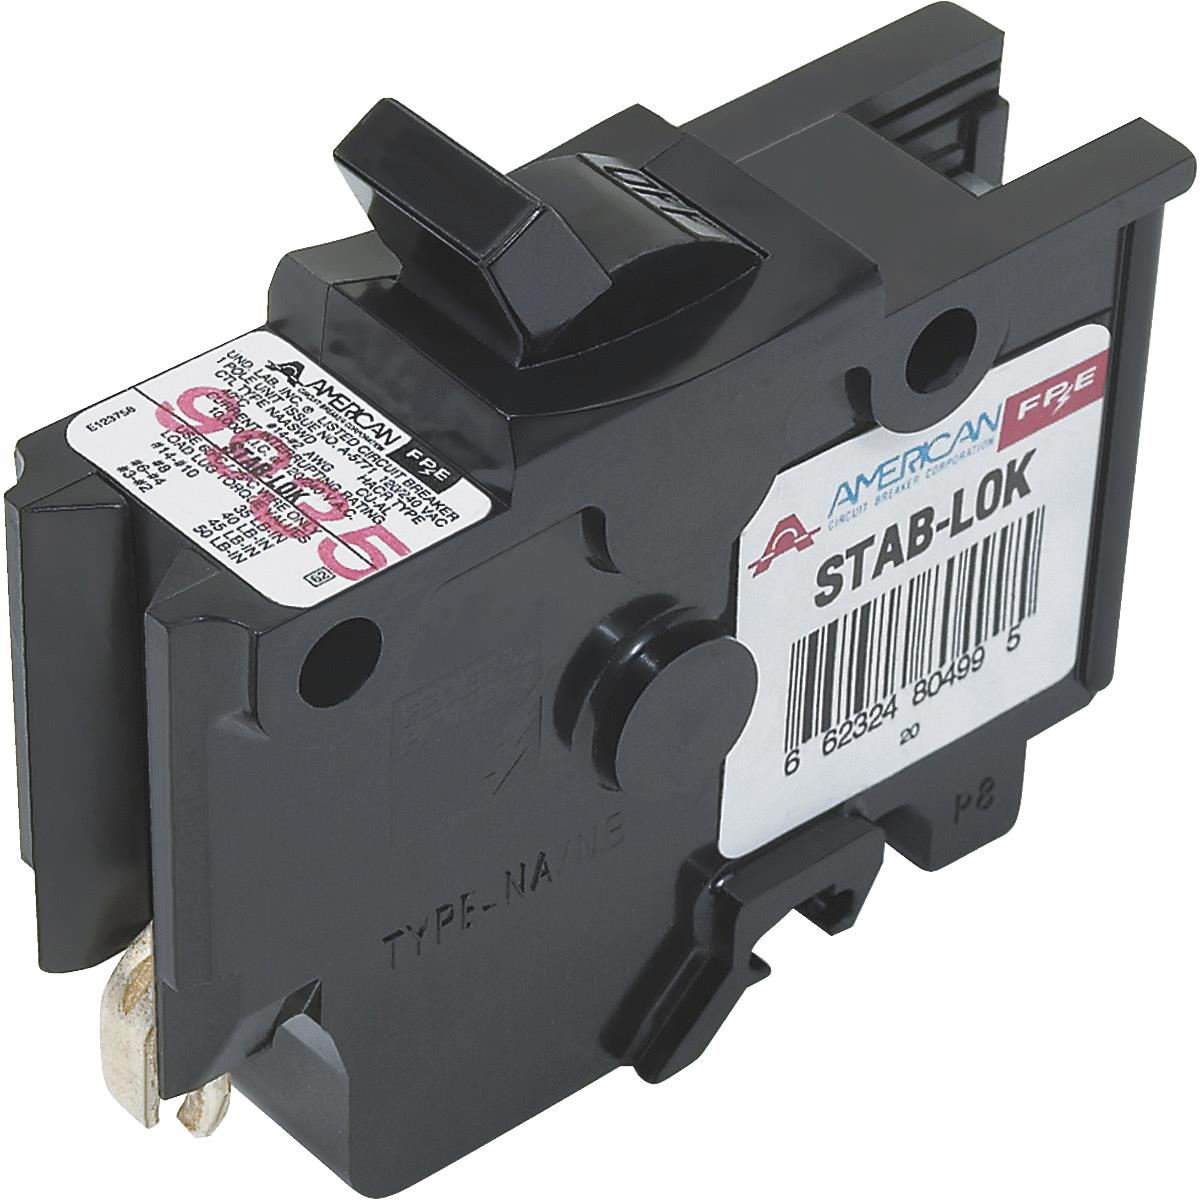 Connecticut Electric Packaged Replacement Circuit Breaker For Federal Pacific